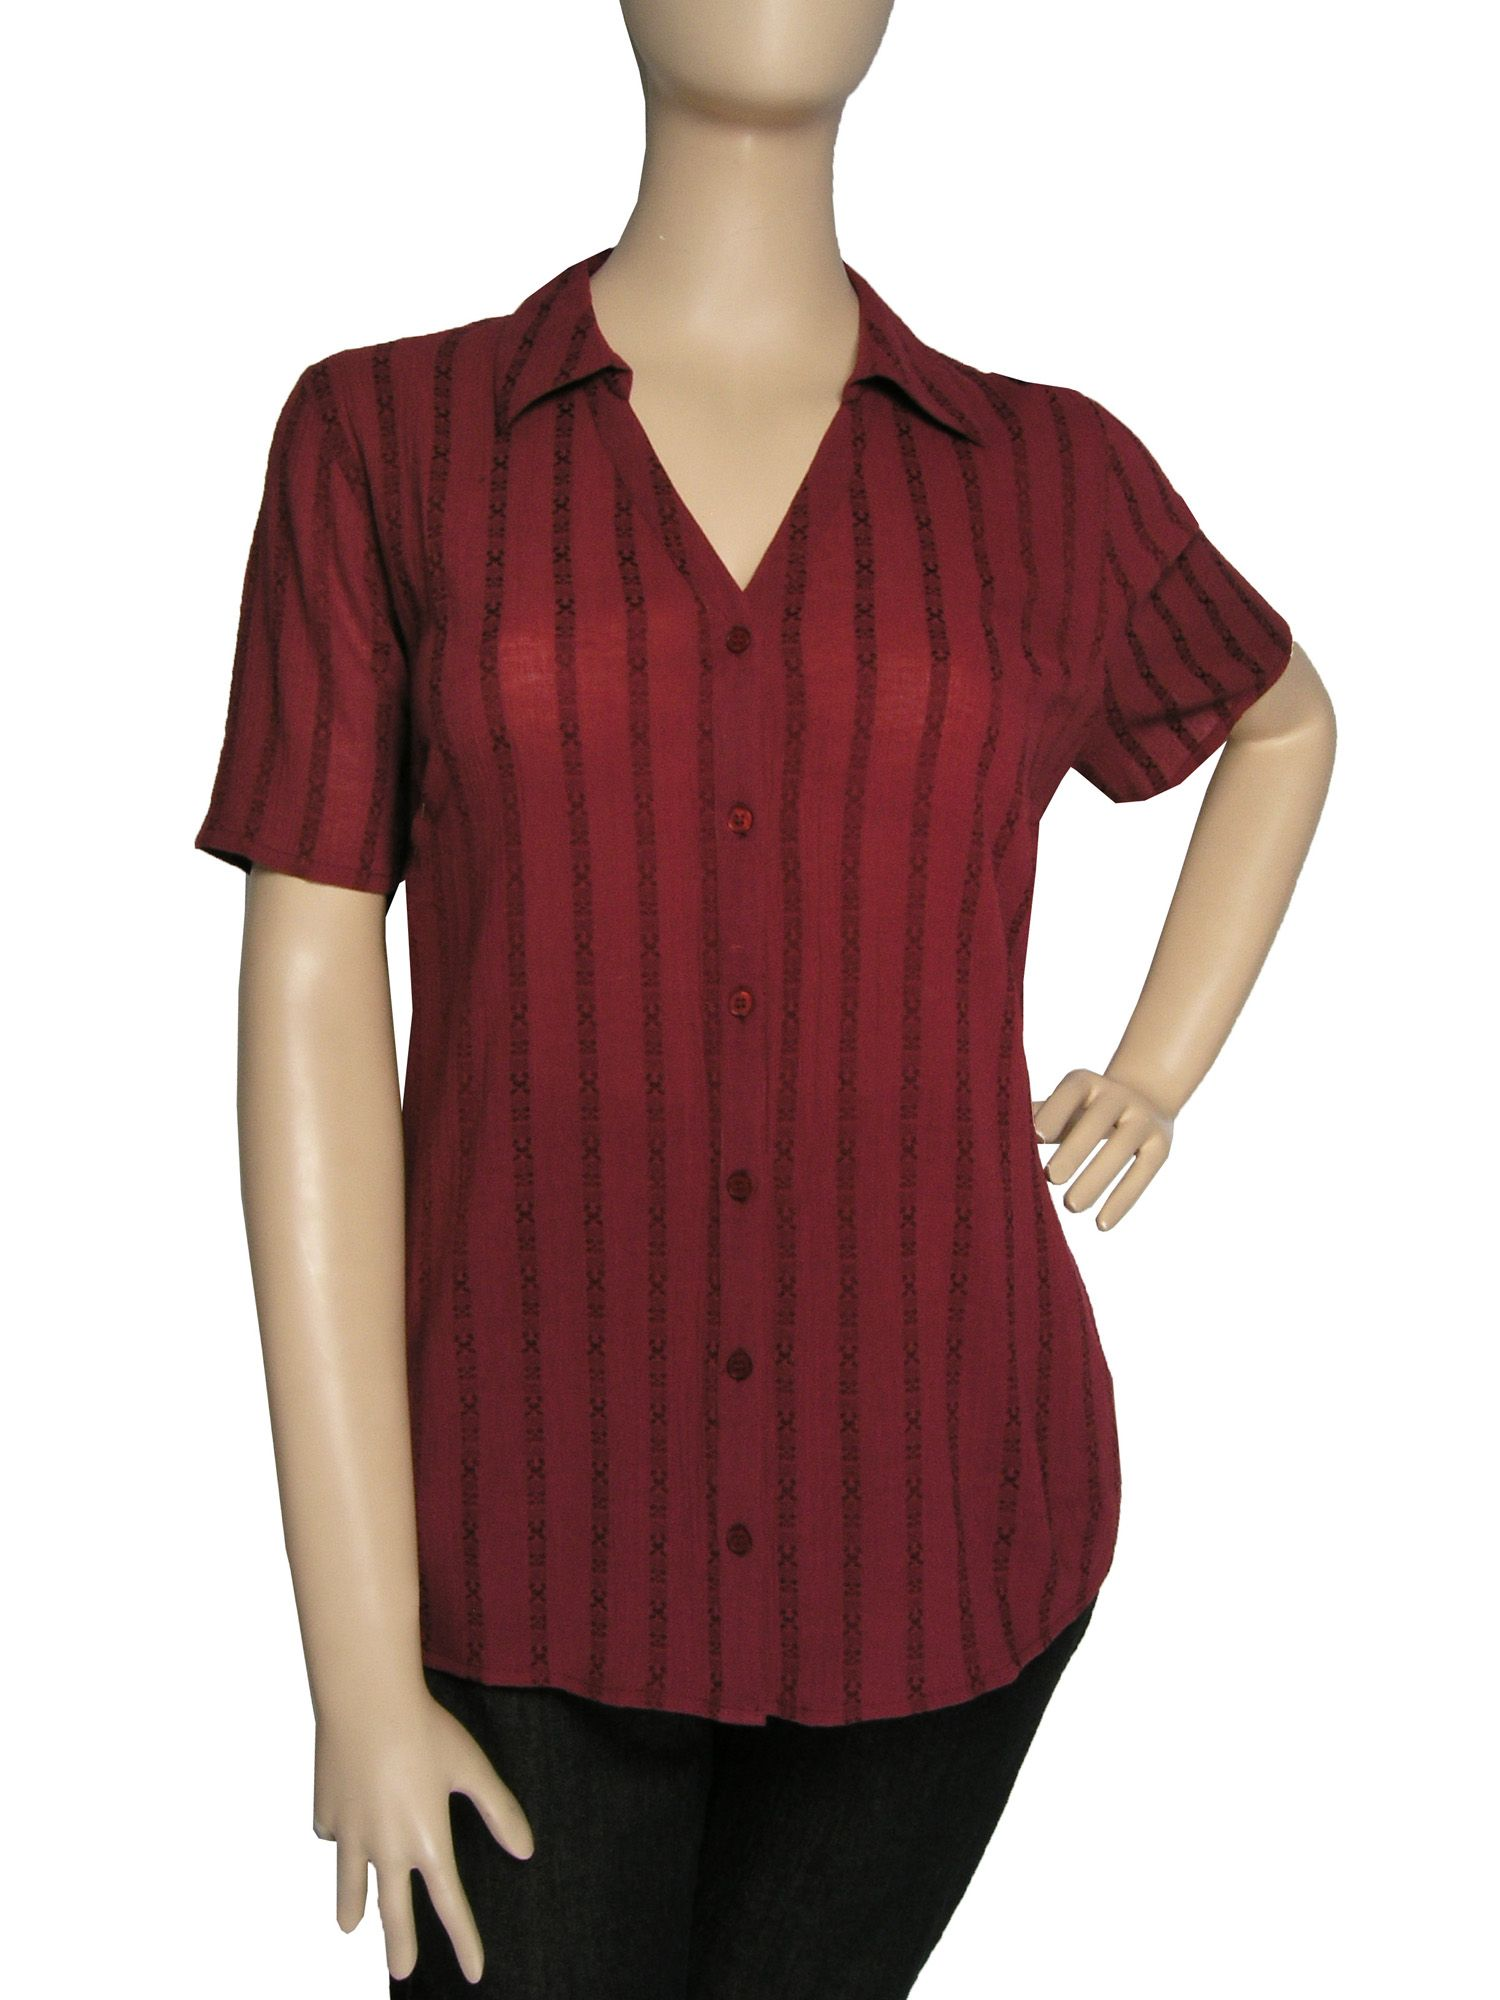 Ann Harvey Cheesecloth blouse - Red 18,18 product image